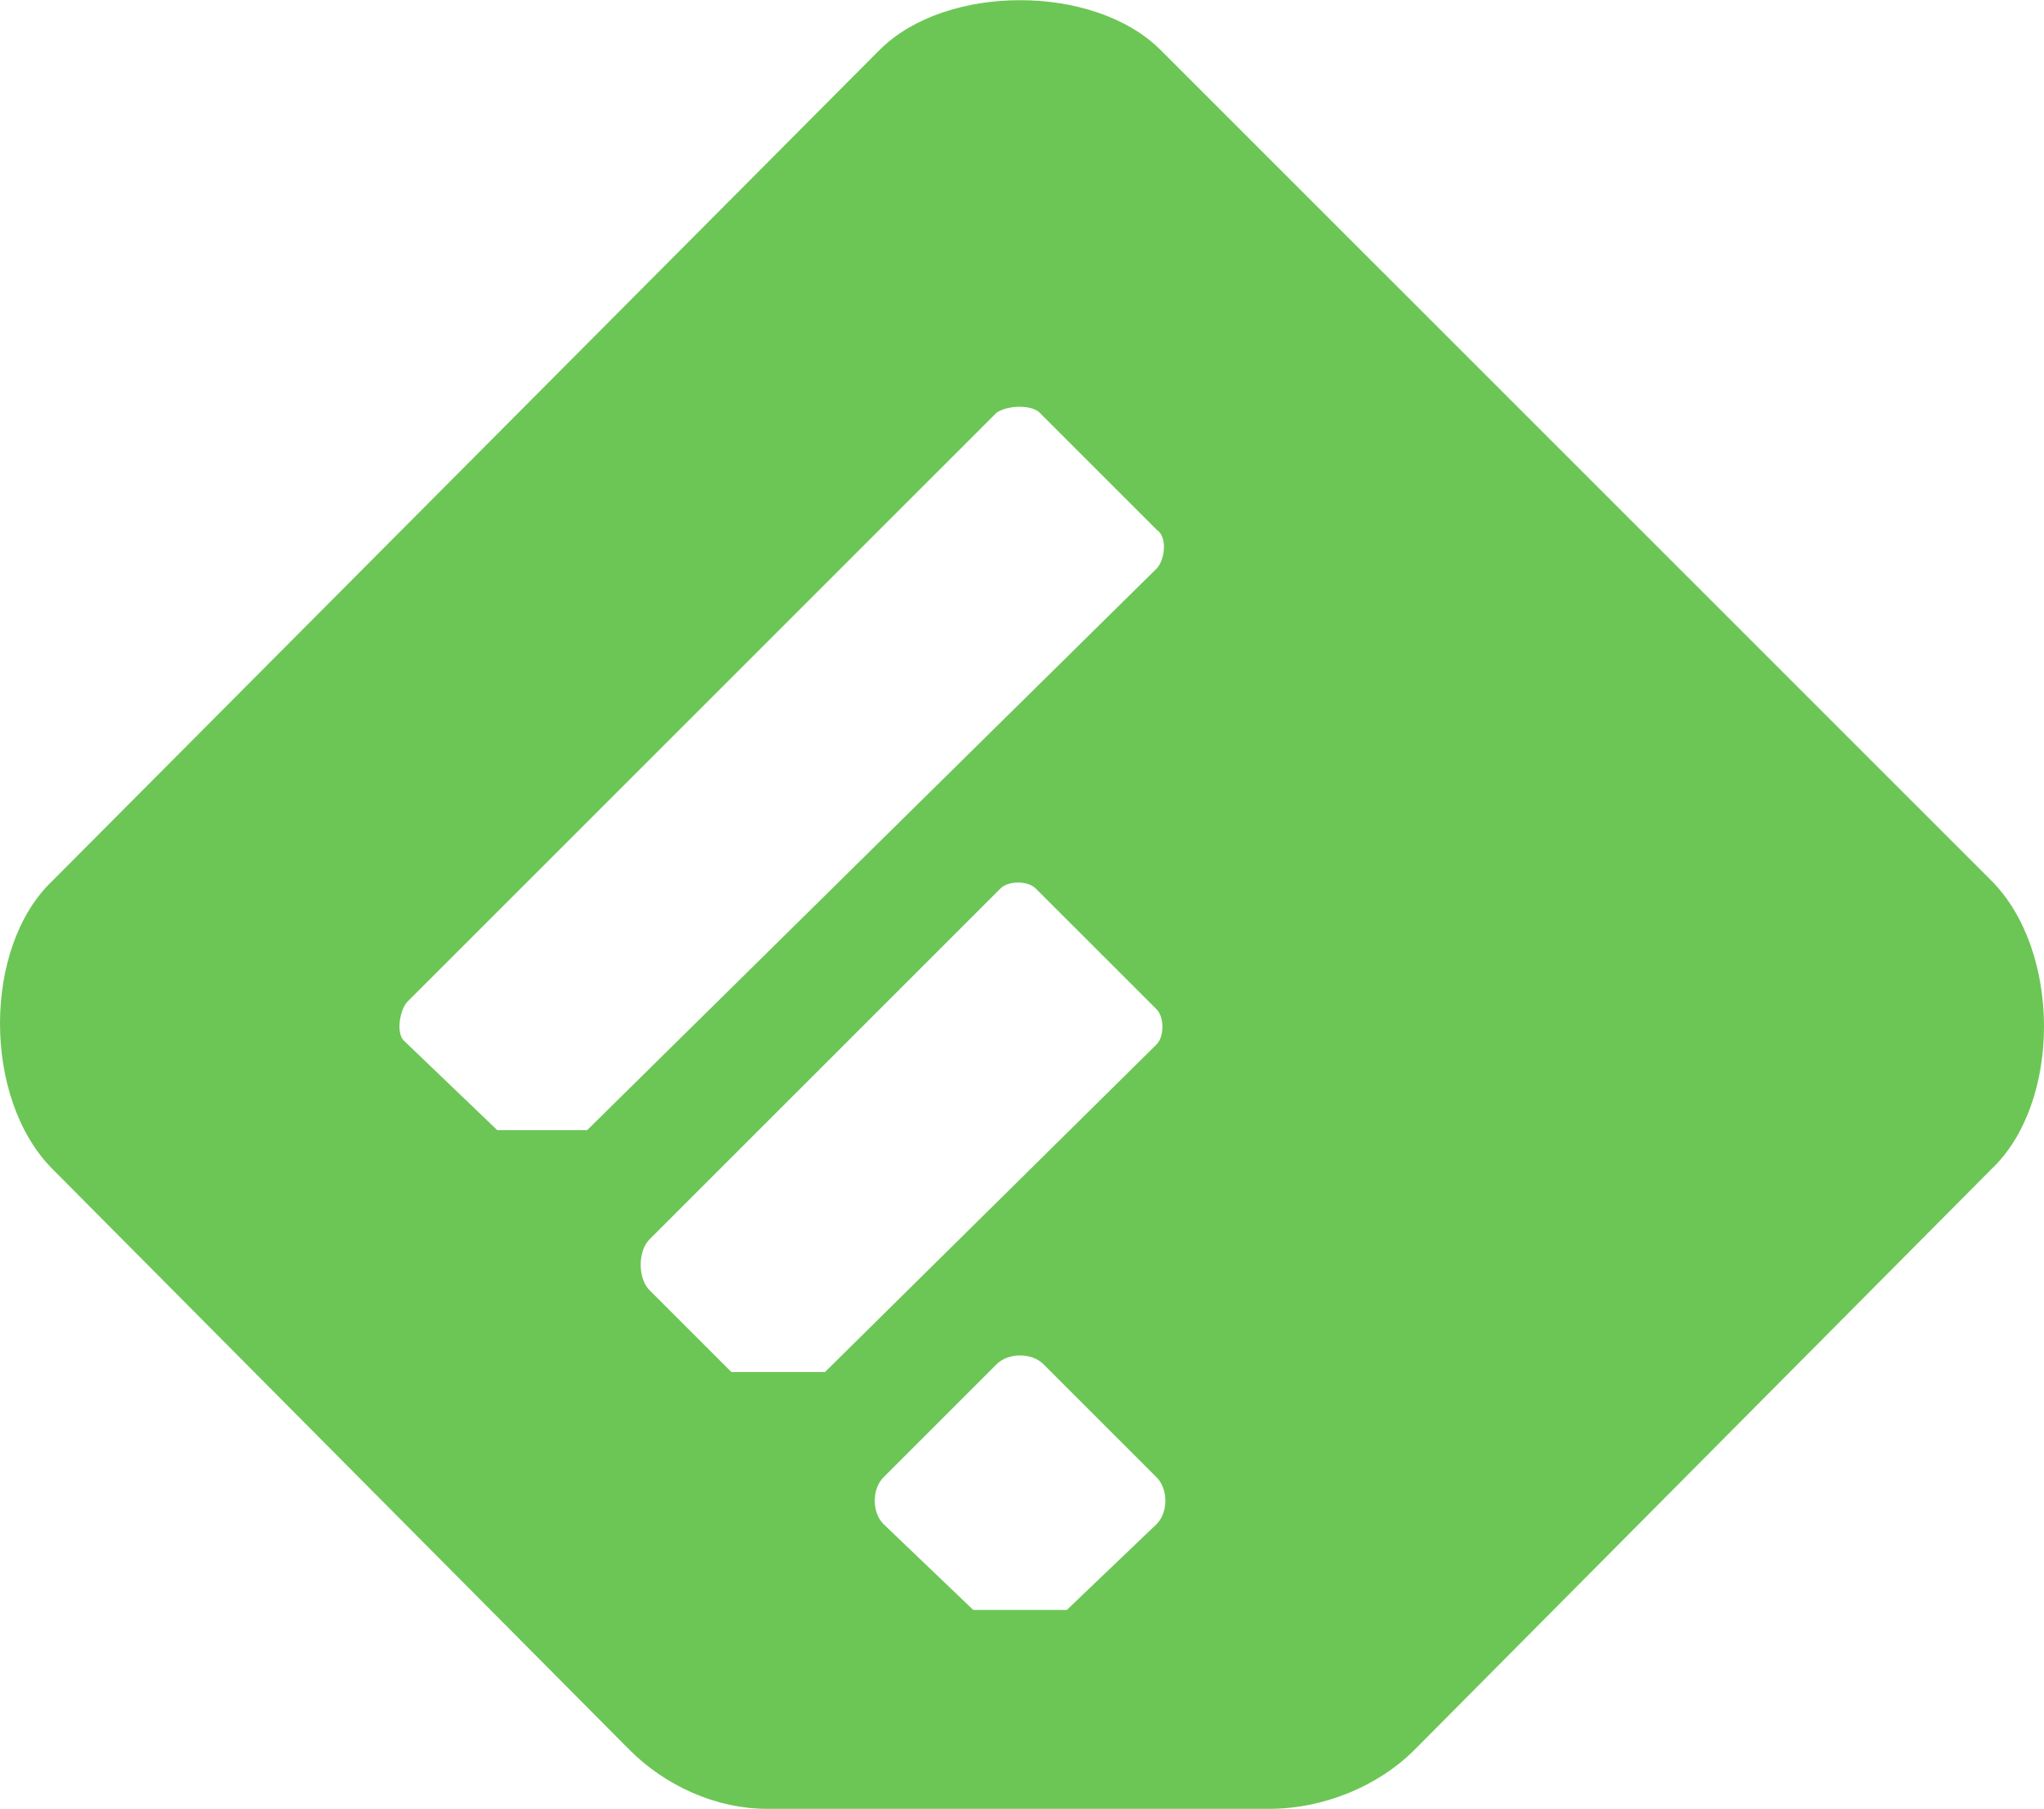 Feedly Png - Feedly Logo PNG Transparent & SVG Vector - Freebie Supply